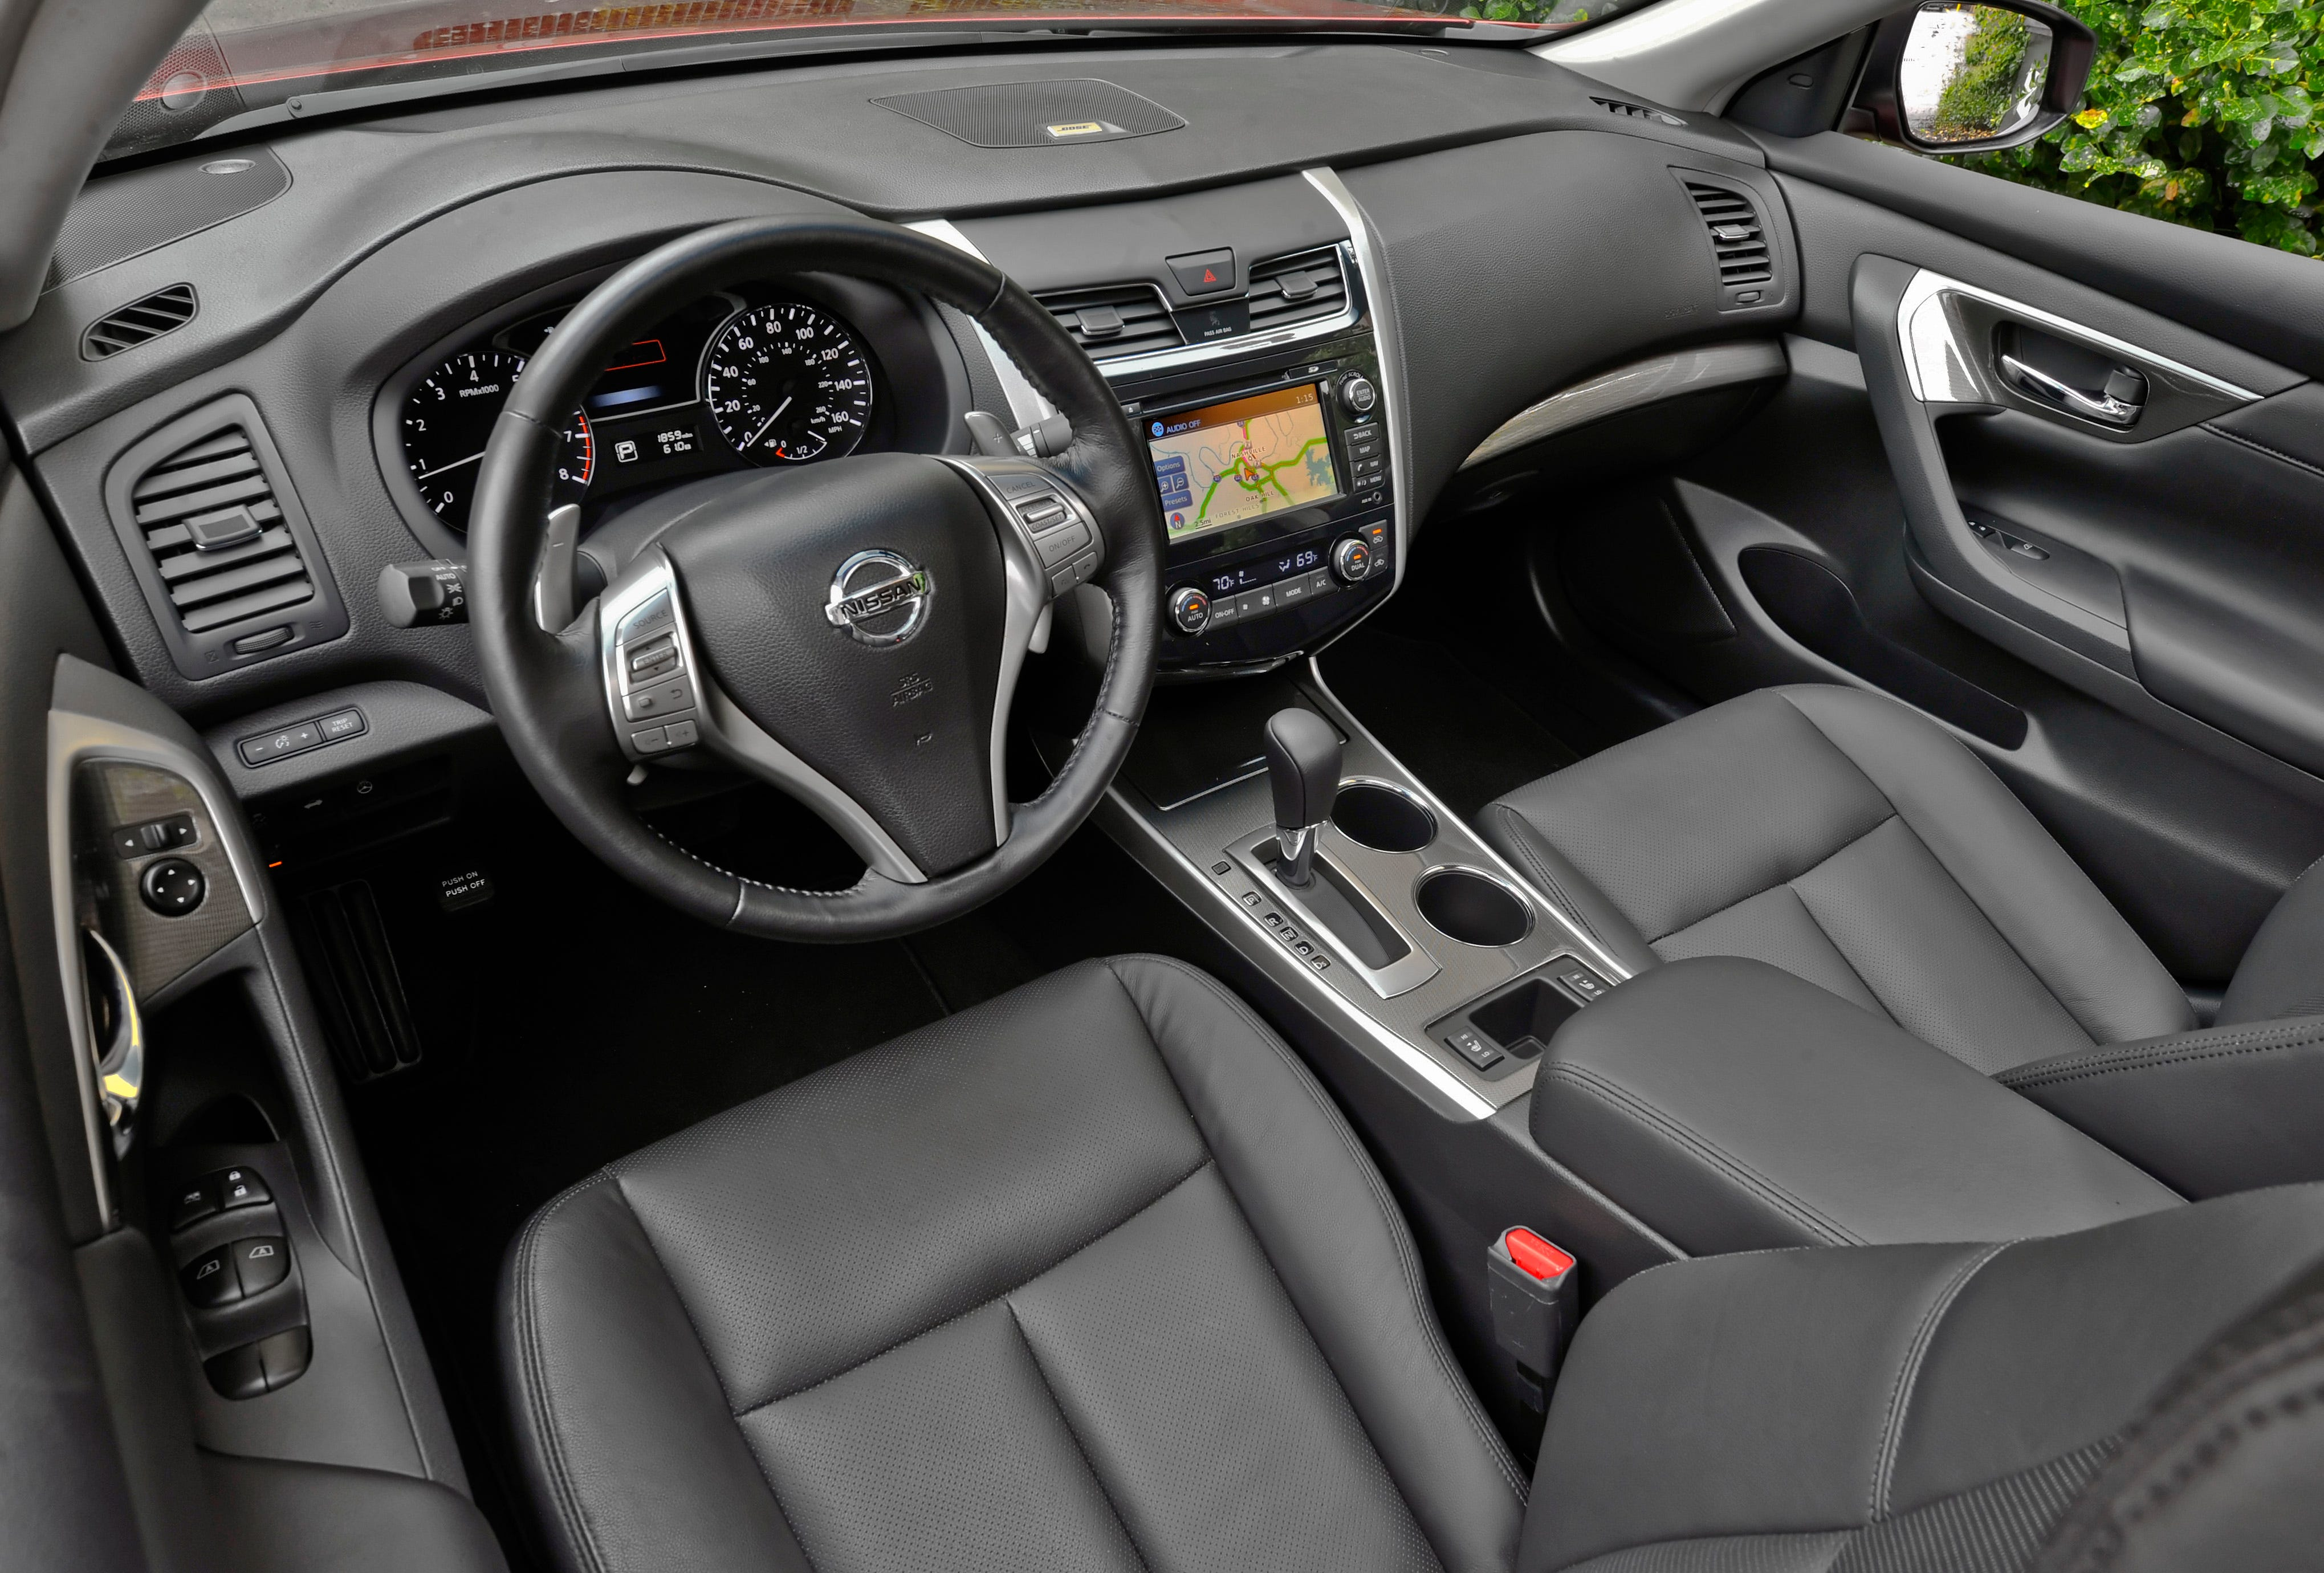 Nissan Altima: Bluetooth streaming audio (if soequipped)